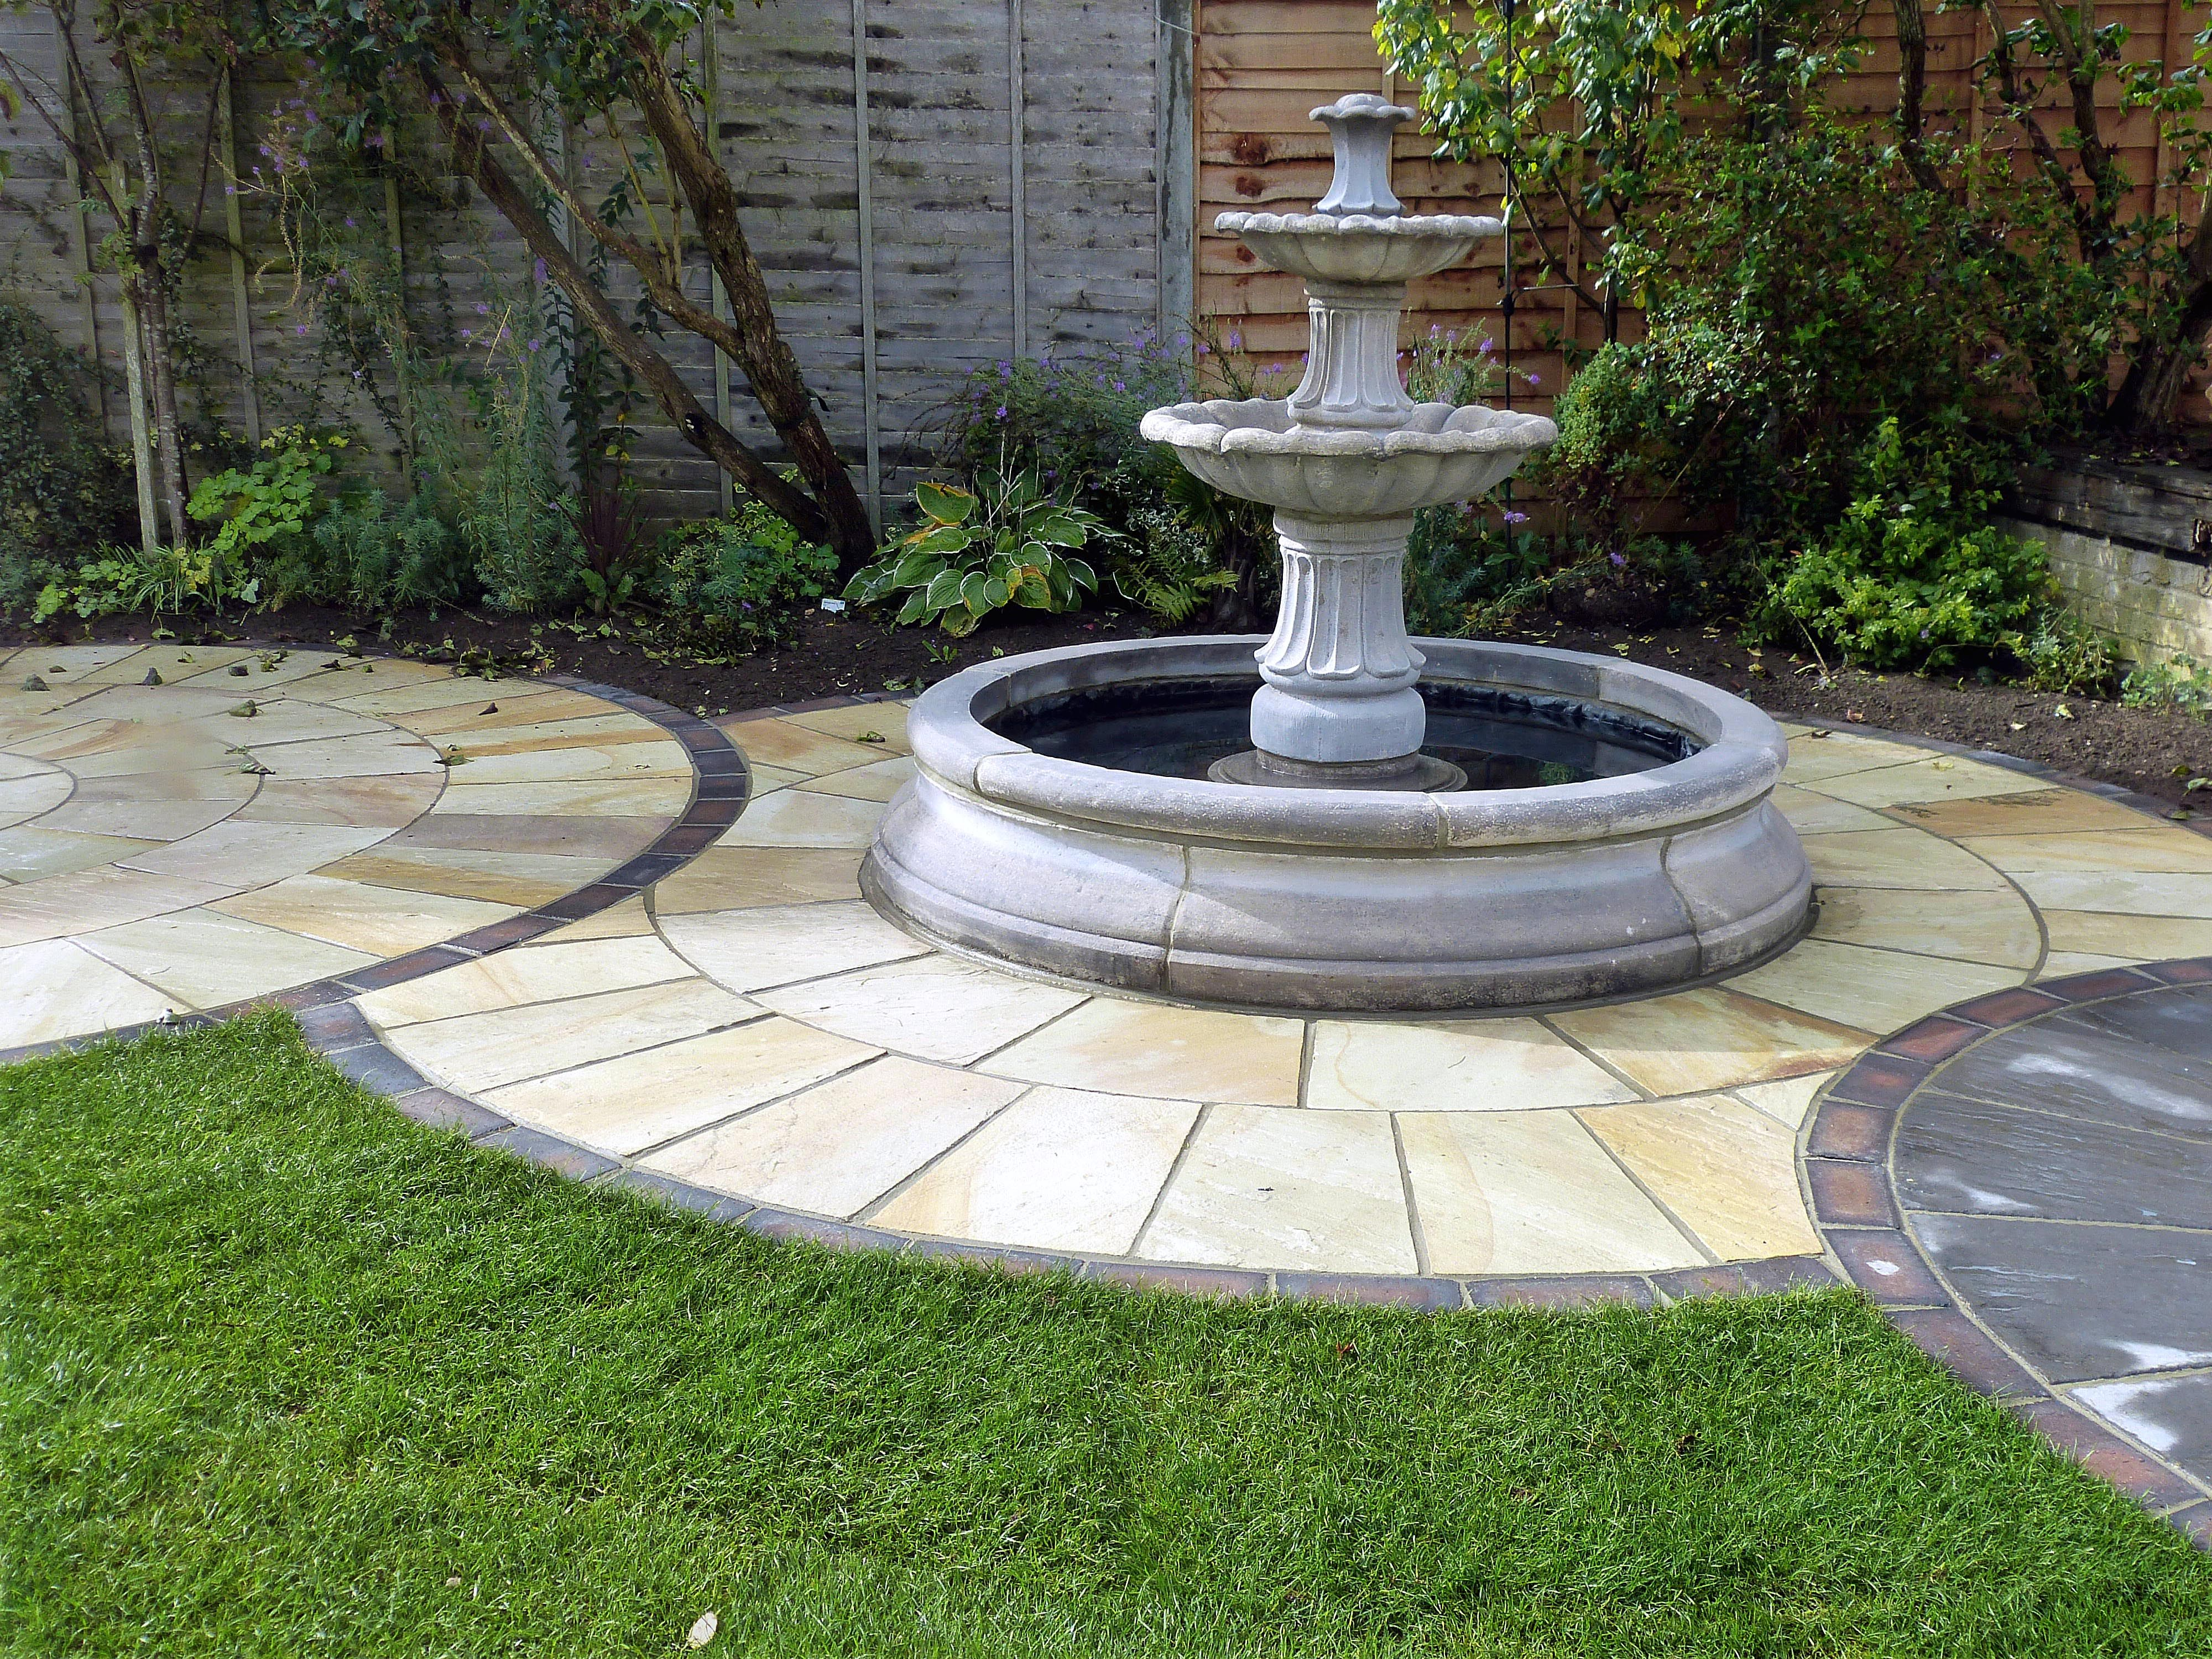 Water Fountain on Stone Circle Garden Design by Hambrooks